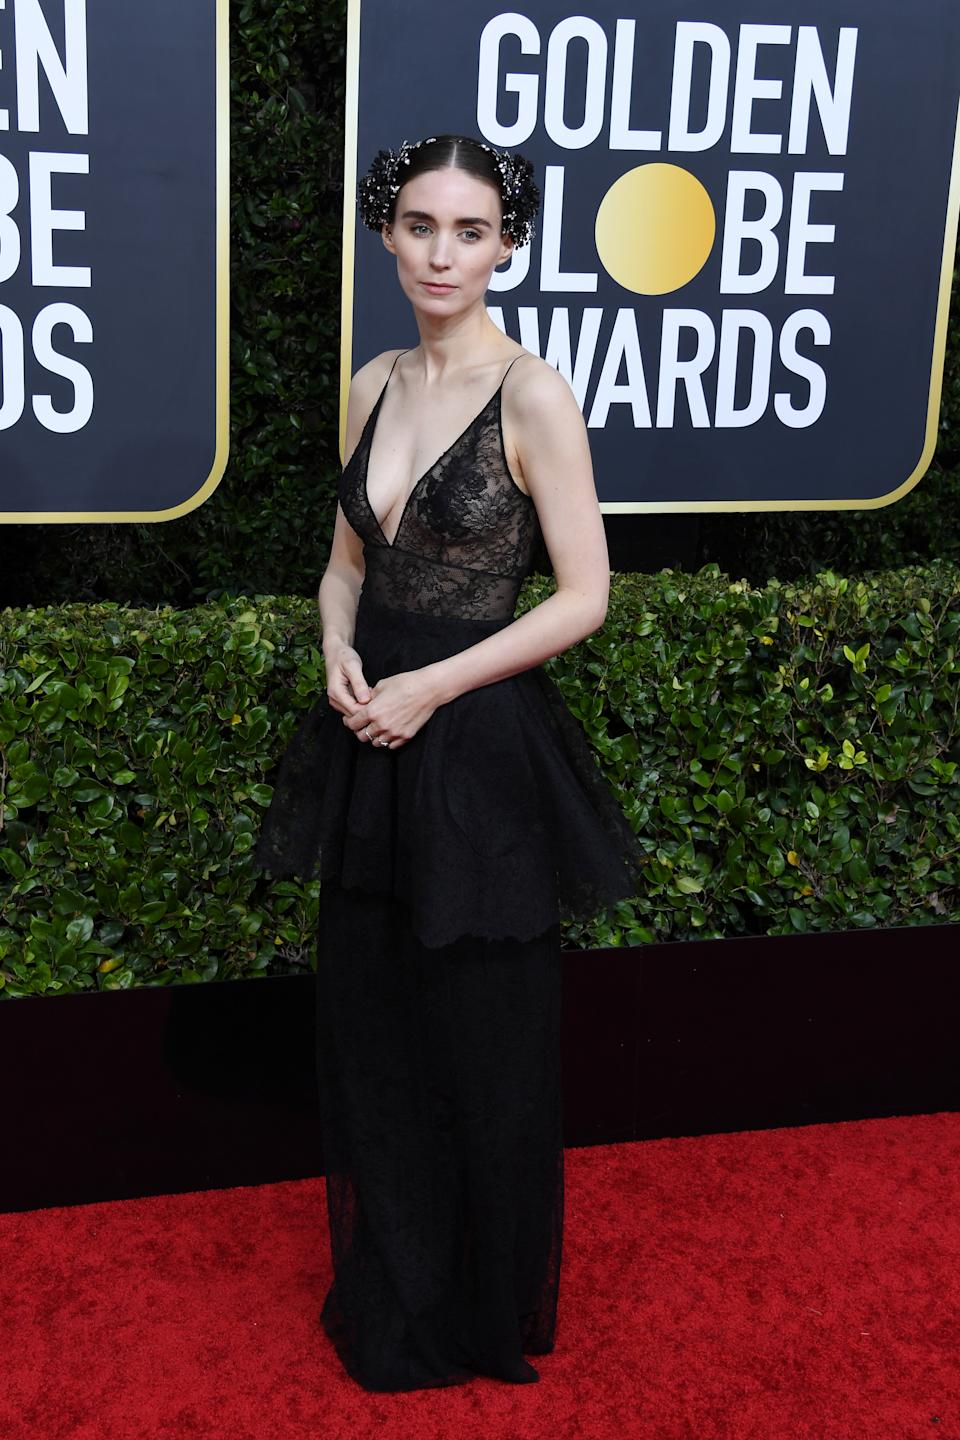 Mara opted for a gothic-inspired gown by Givenchy to support fiancé and Golden Globe nominee Joaquin Phoenix. (Photo by Daniele Venturelli/WireImage)